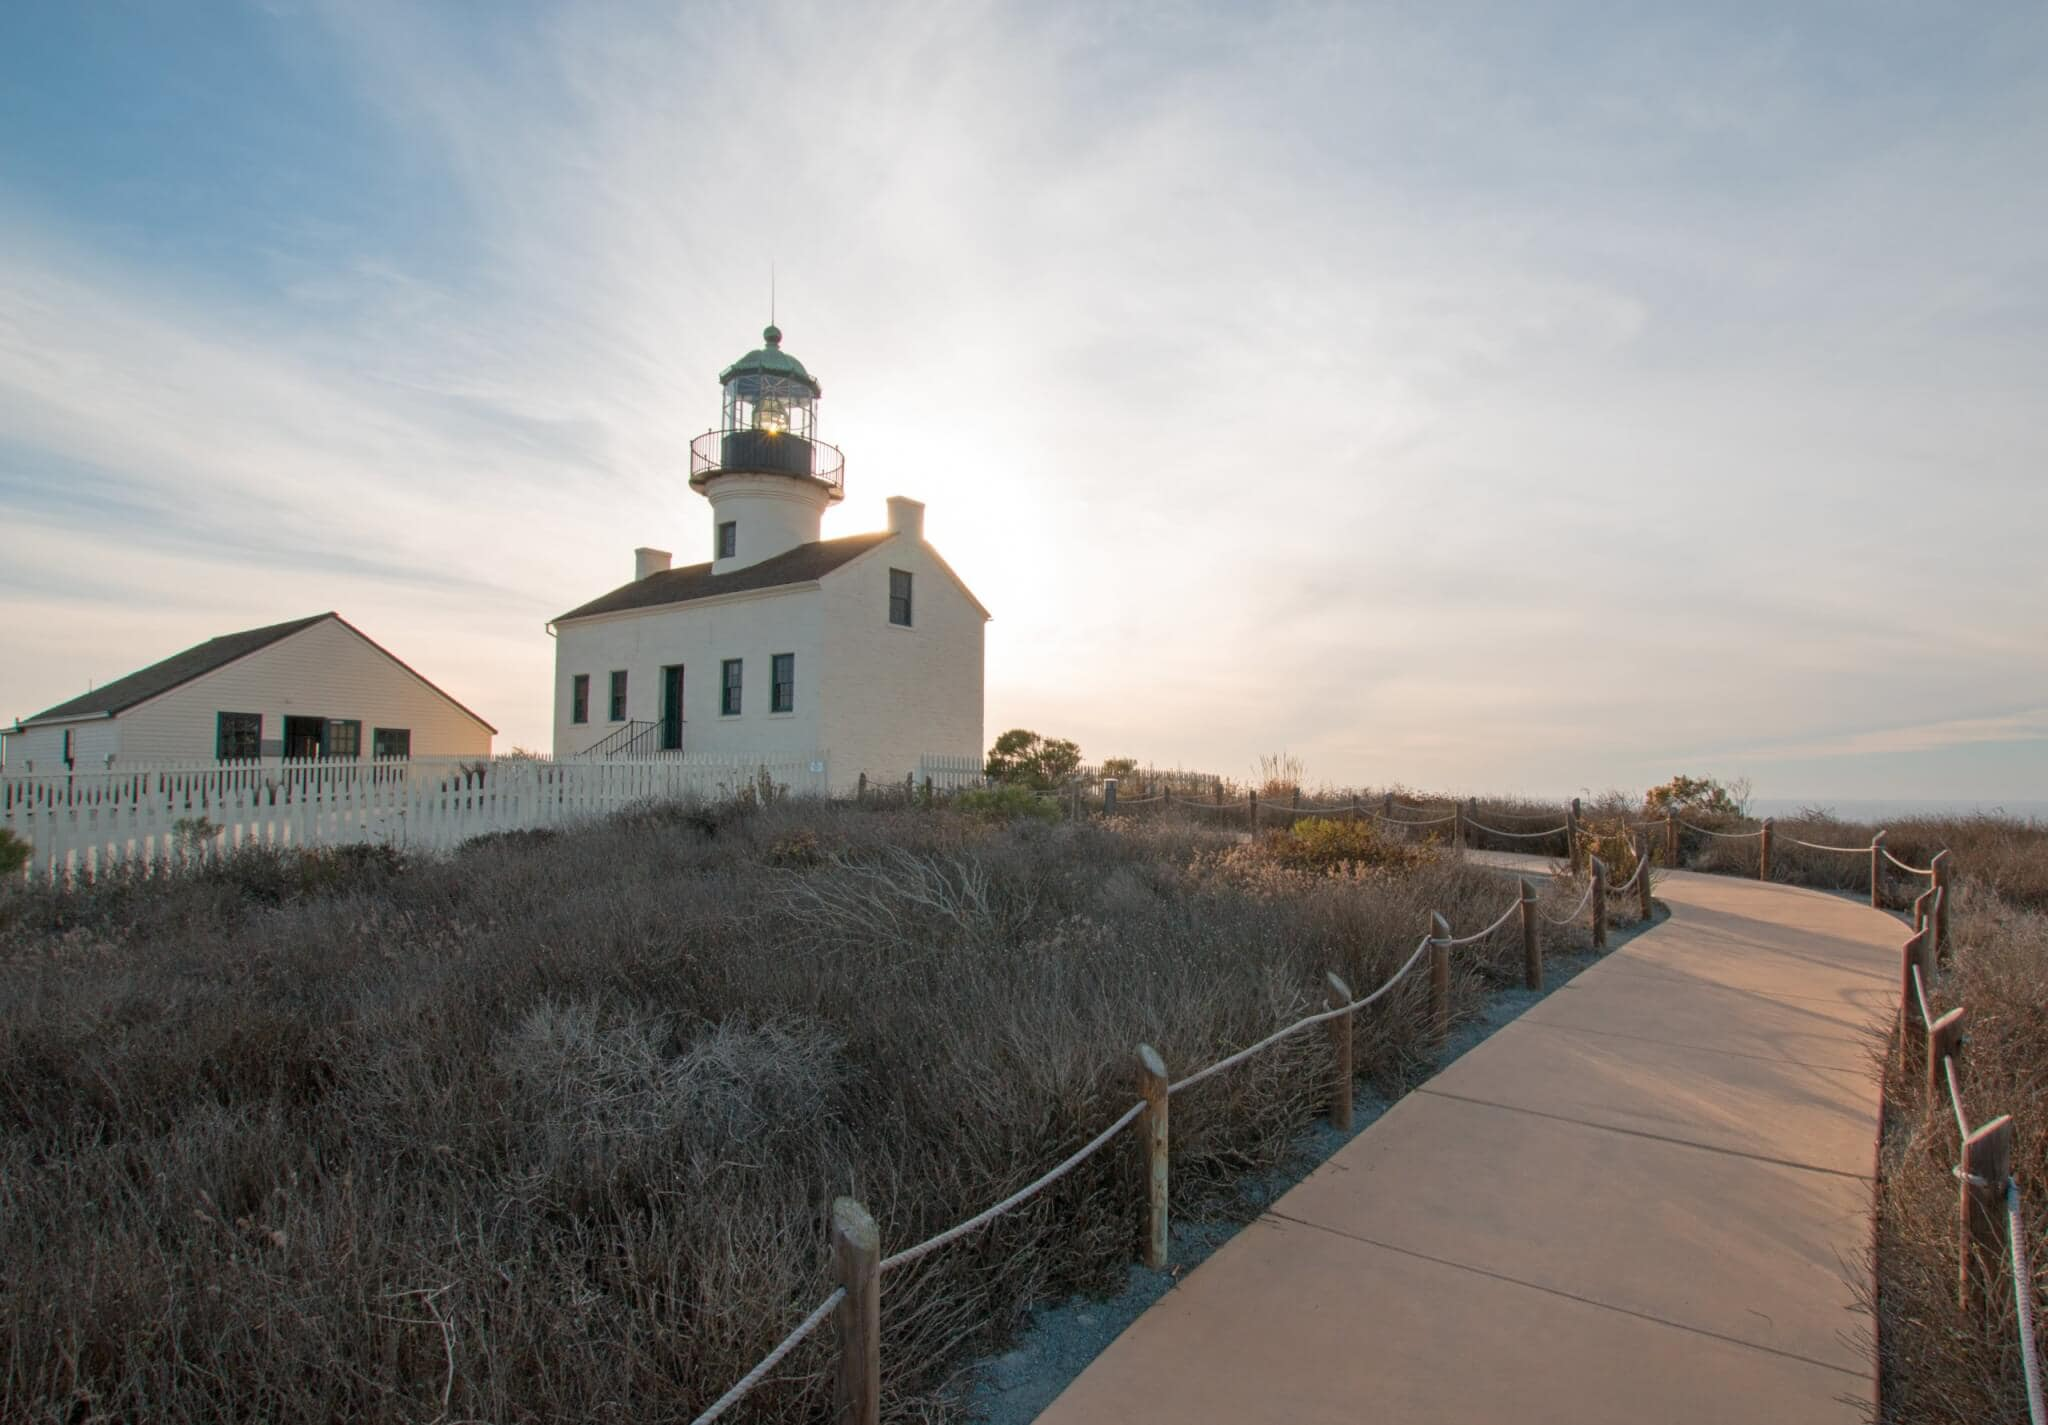 Lighthouse in Point Loma, CA